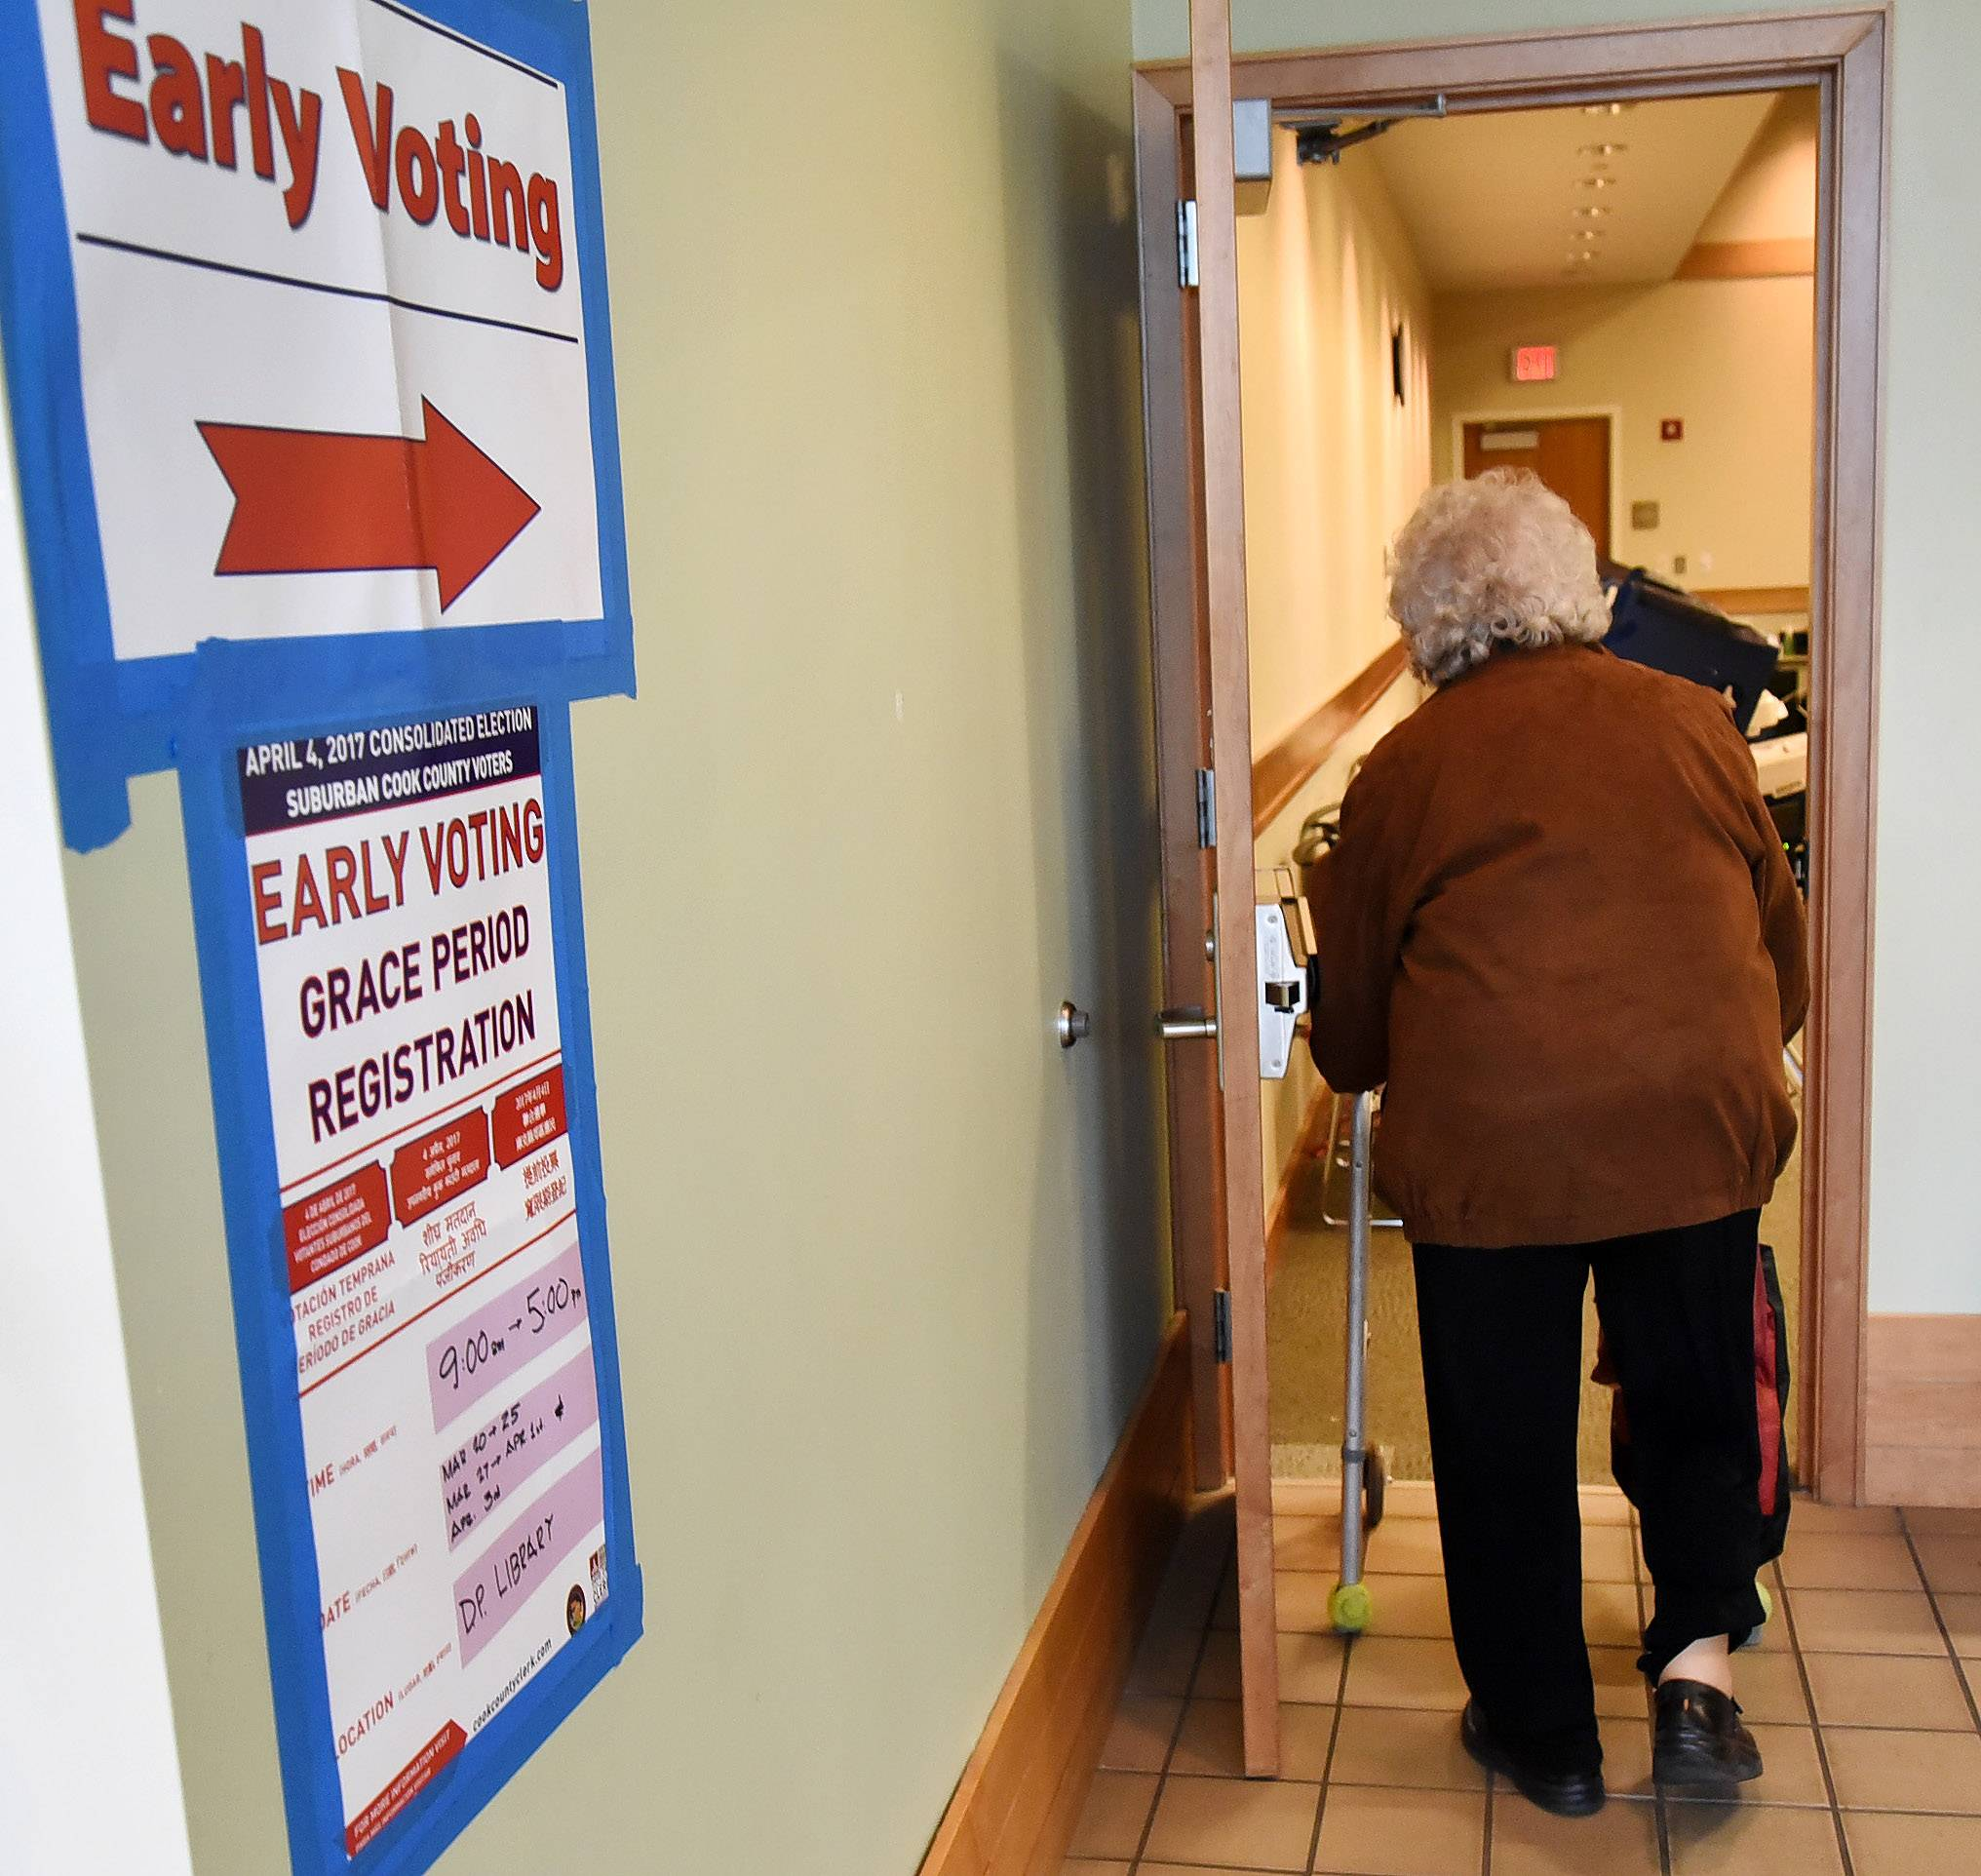 Editorial: Voter apathy shows need to consolidate government